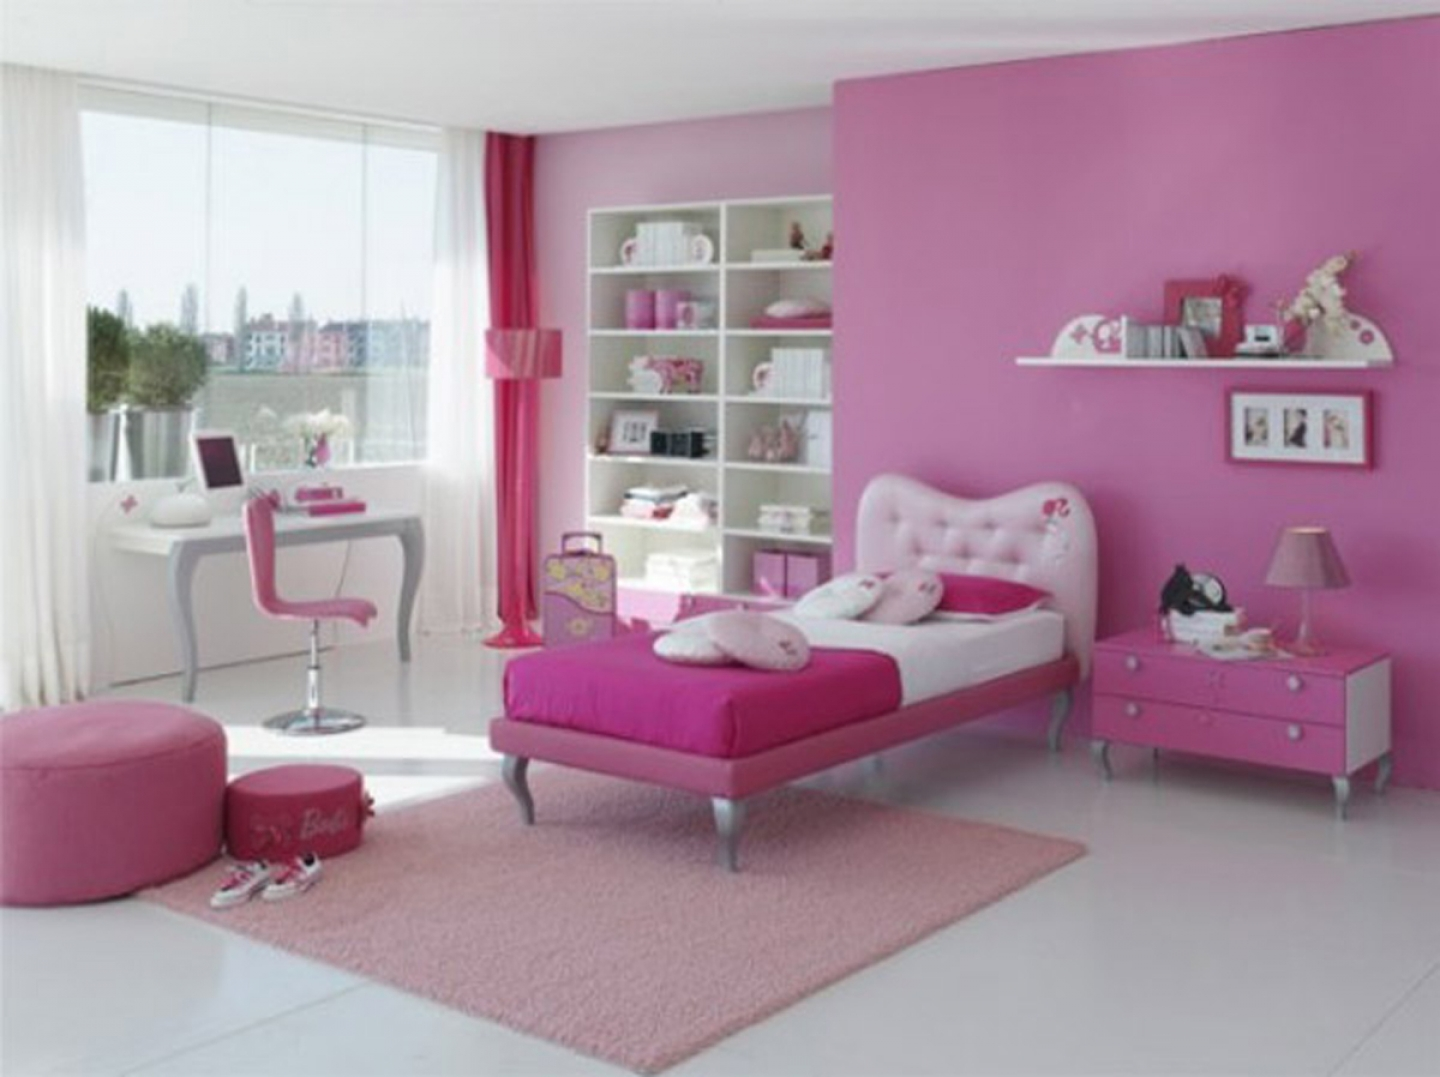 girl bedroom ideas painting photo - 2